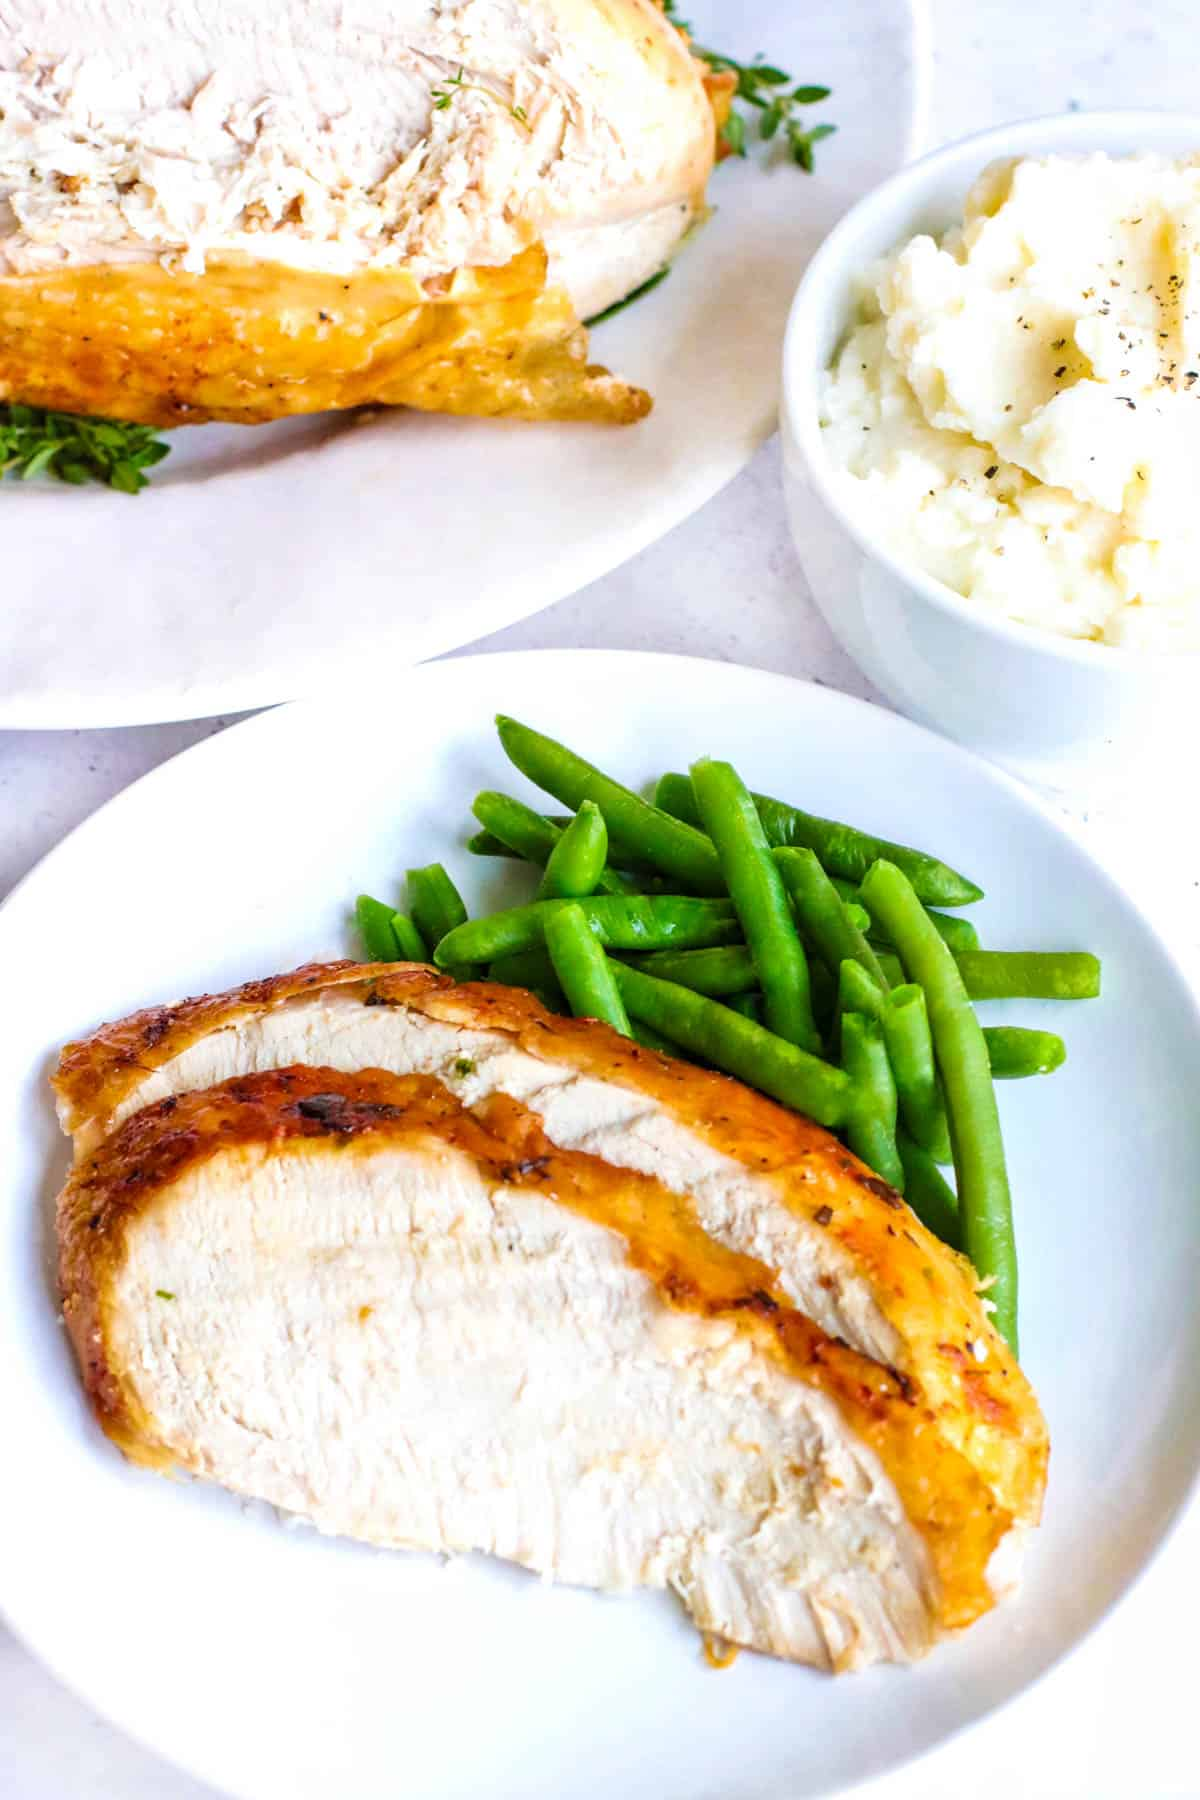 turkey slices, green beans and mashed potatoes